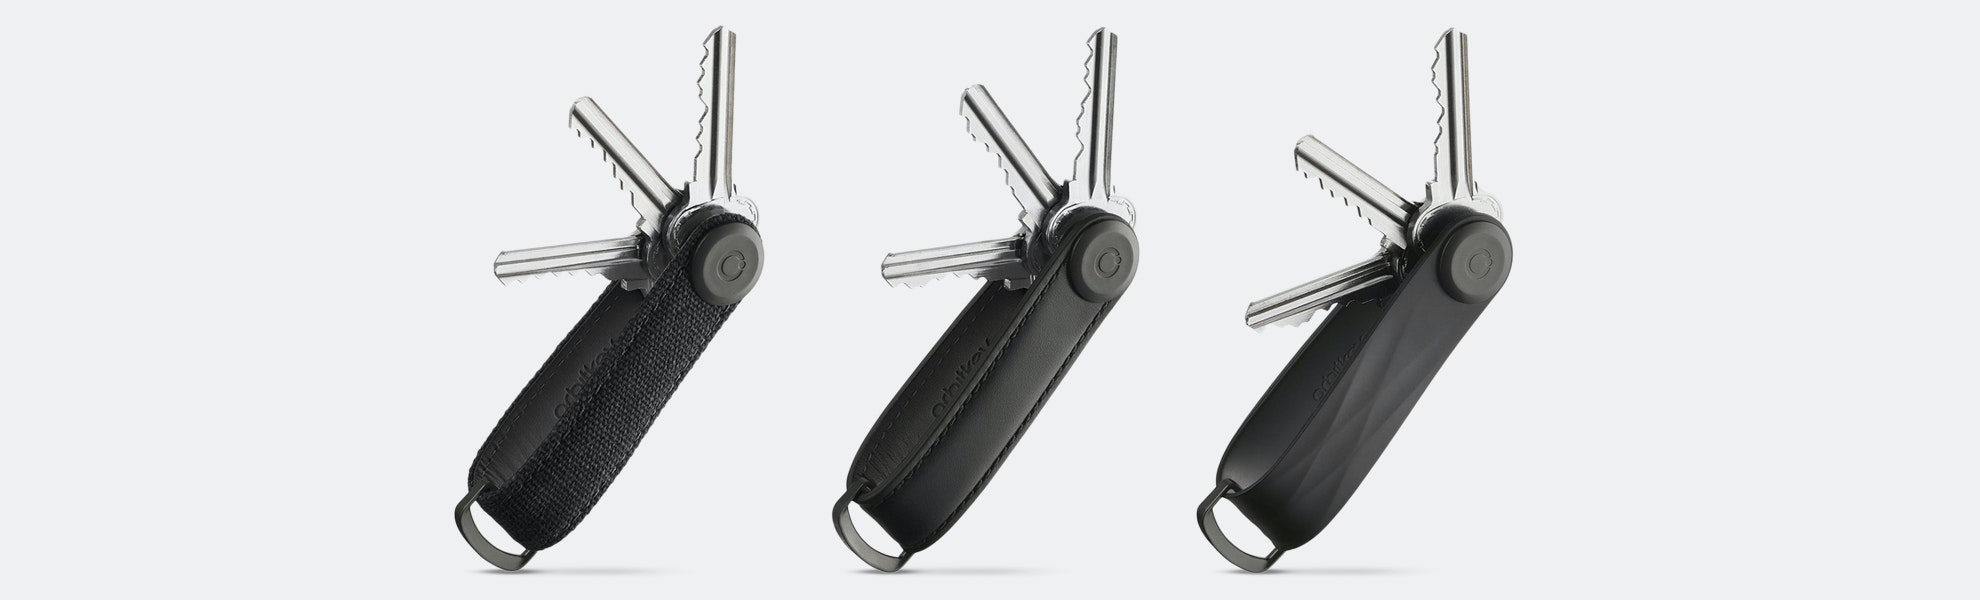 Orbitkey Black Limited-Edition Key Organizer